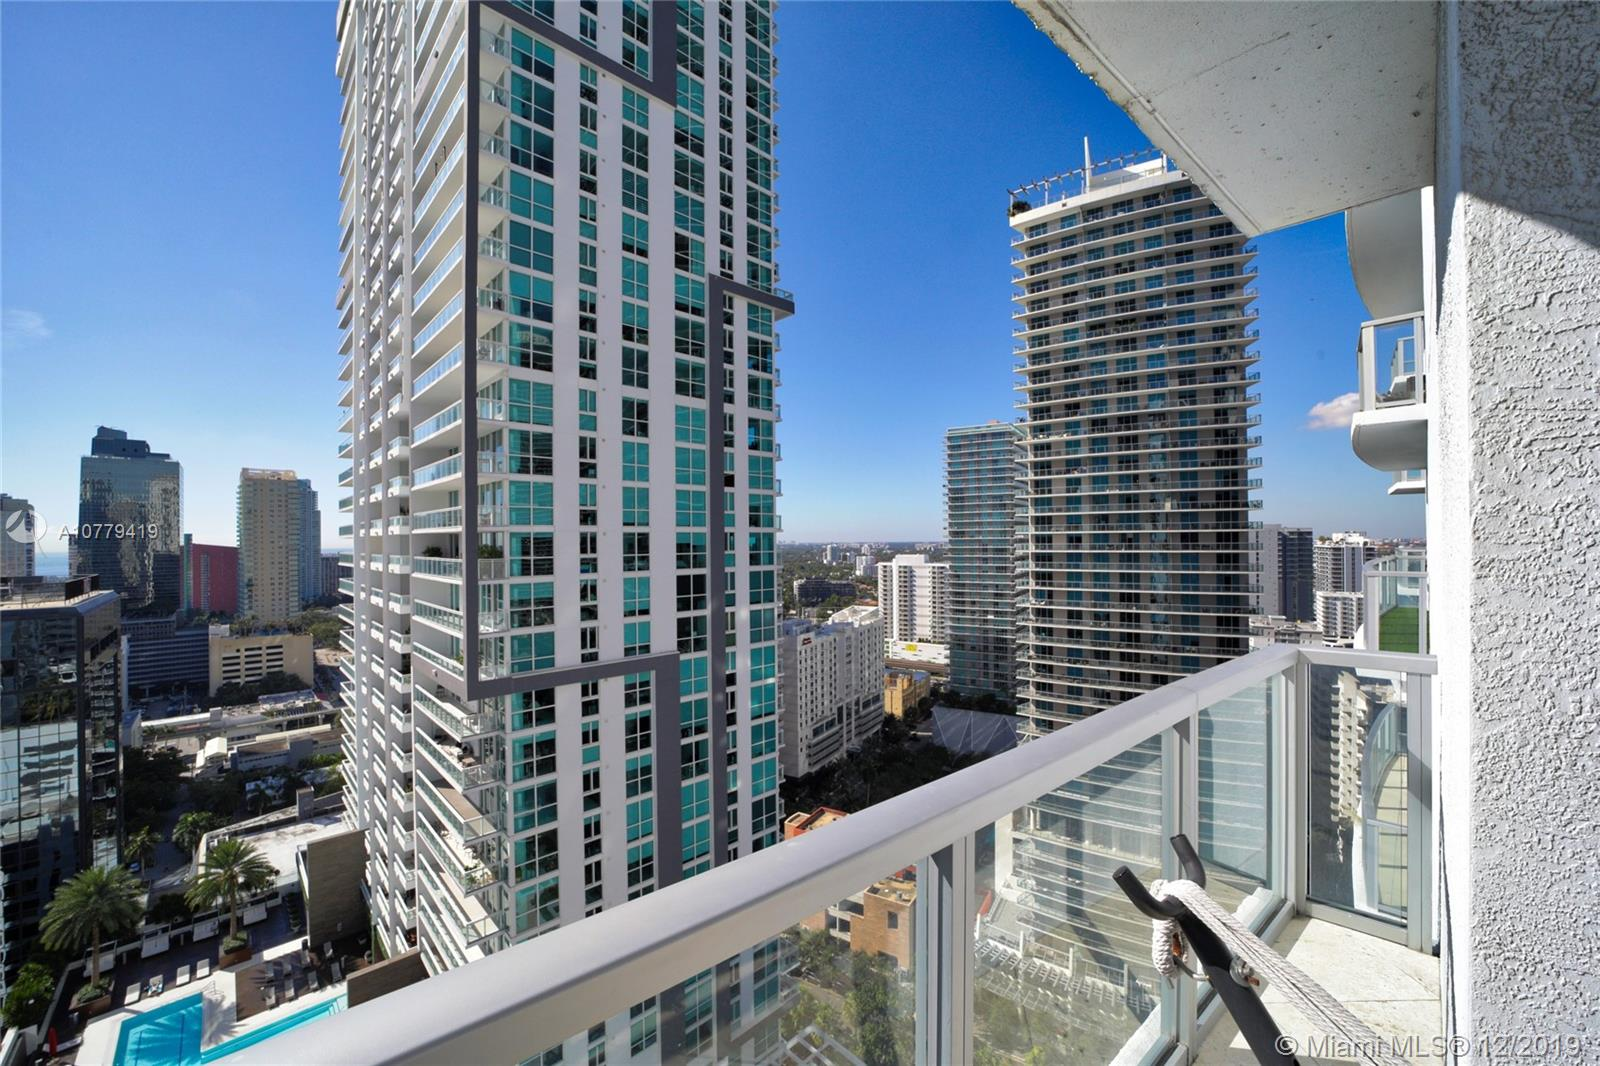 1050  Brickell Ave #2510 For Sale A10779419, FL